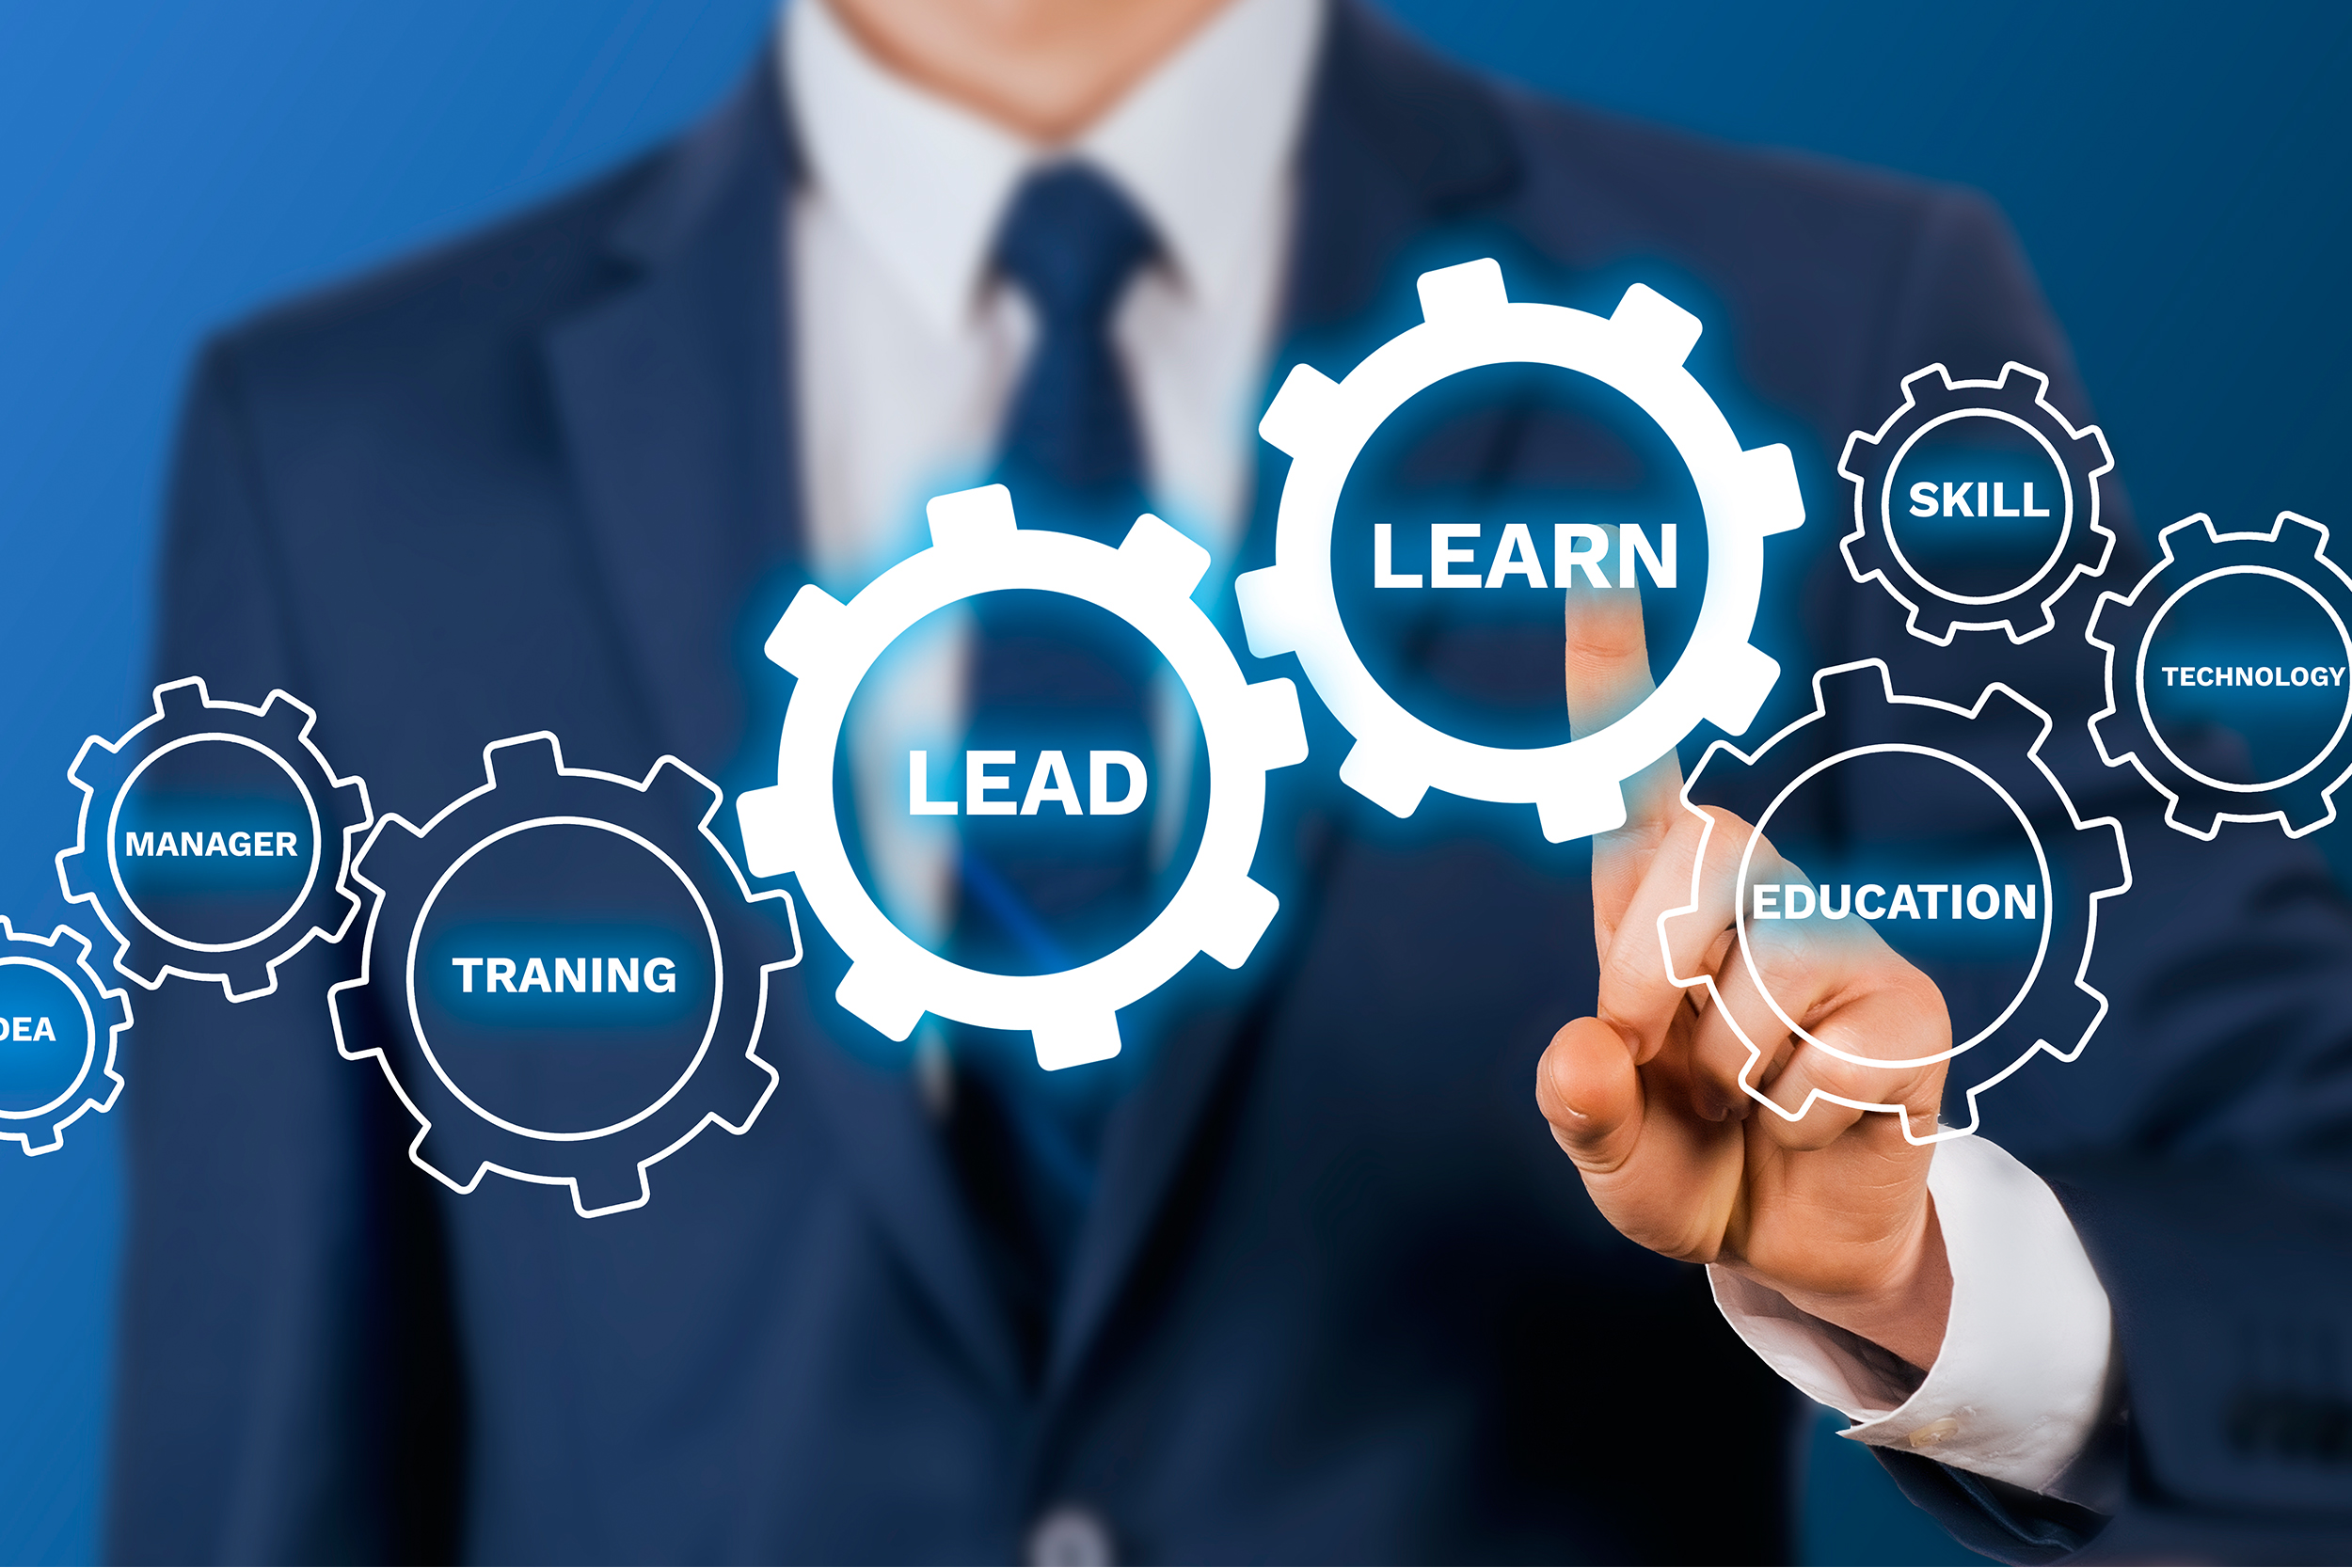 What are the most important training tools for modern-day training systems?